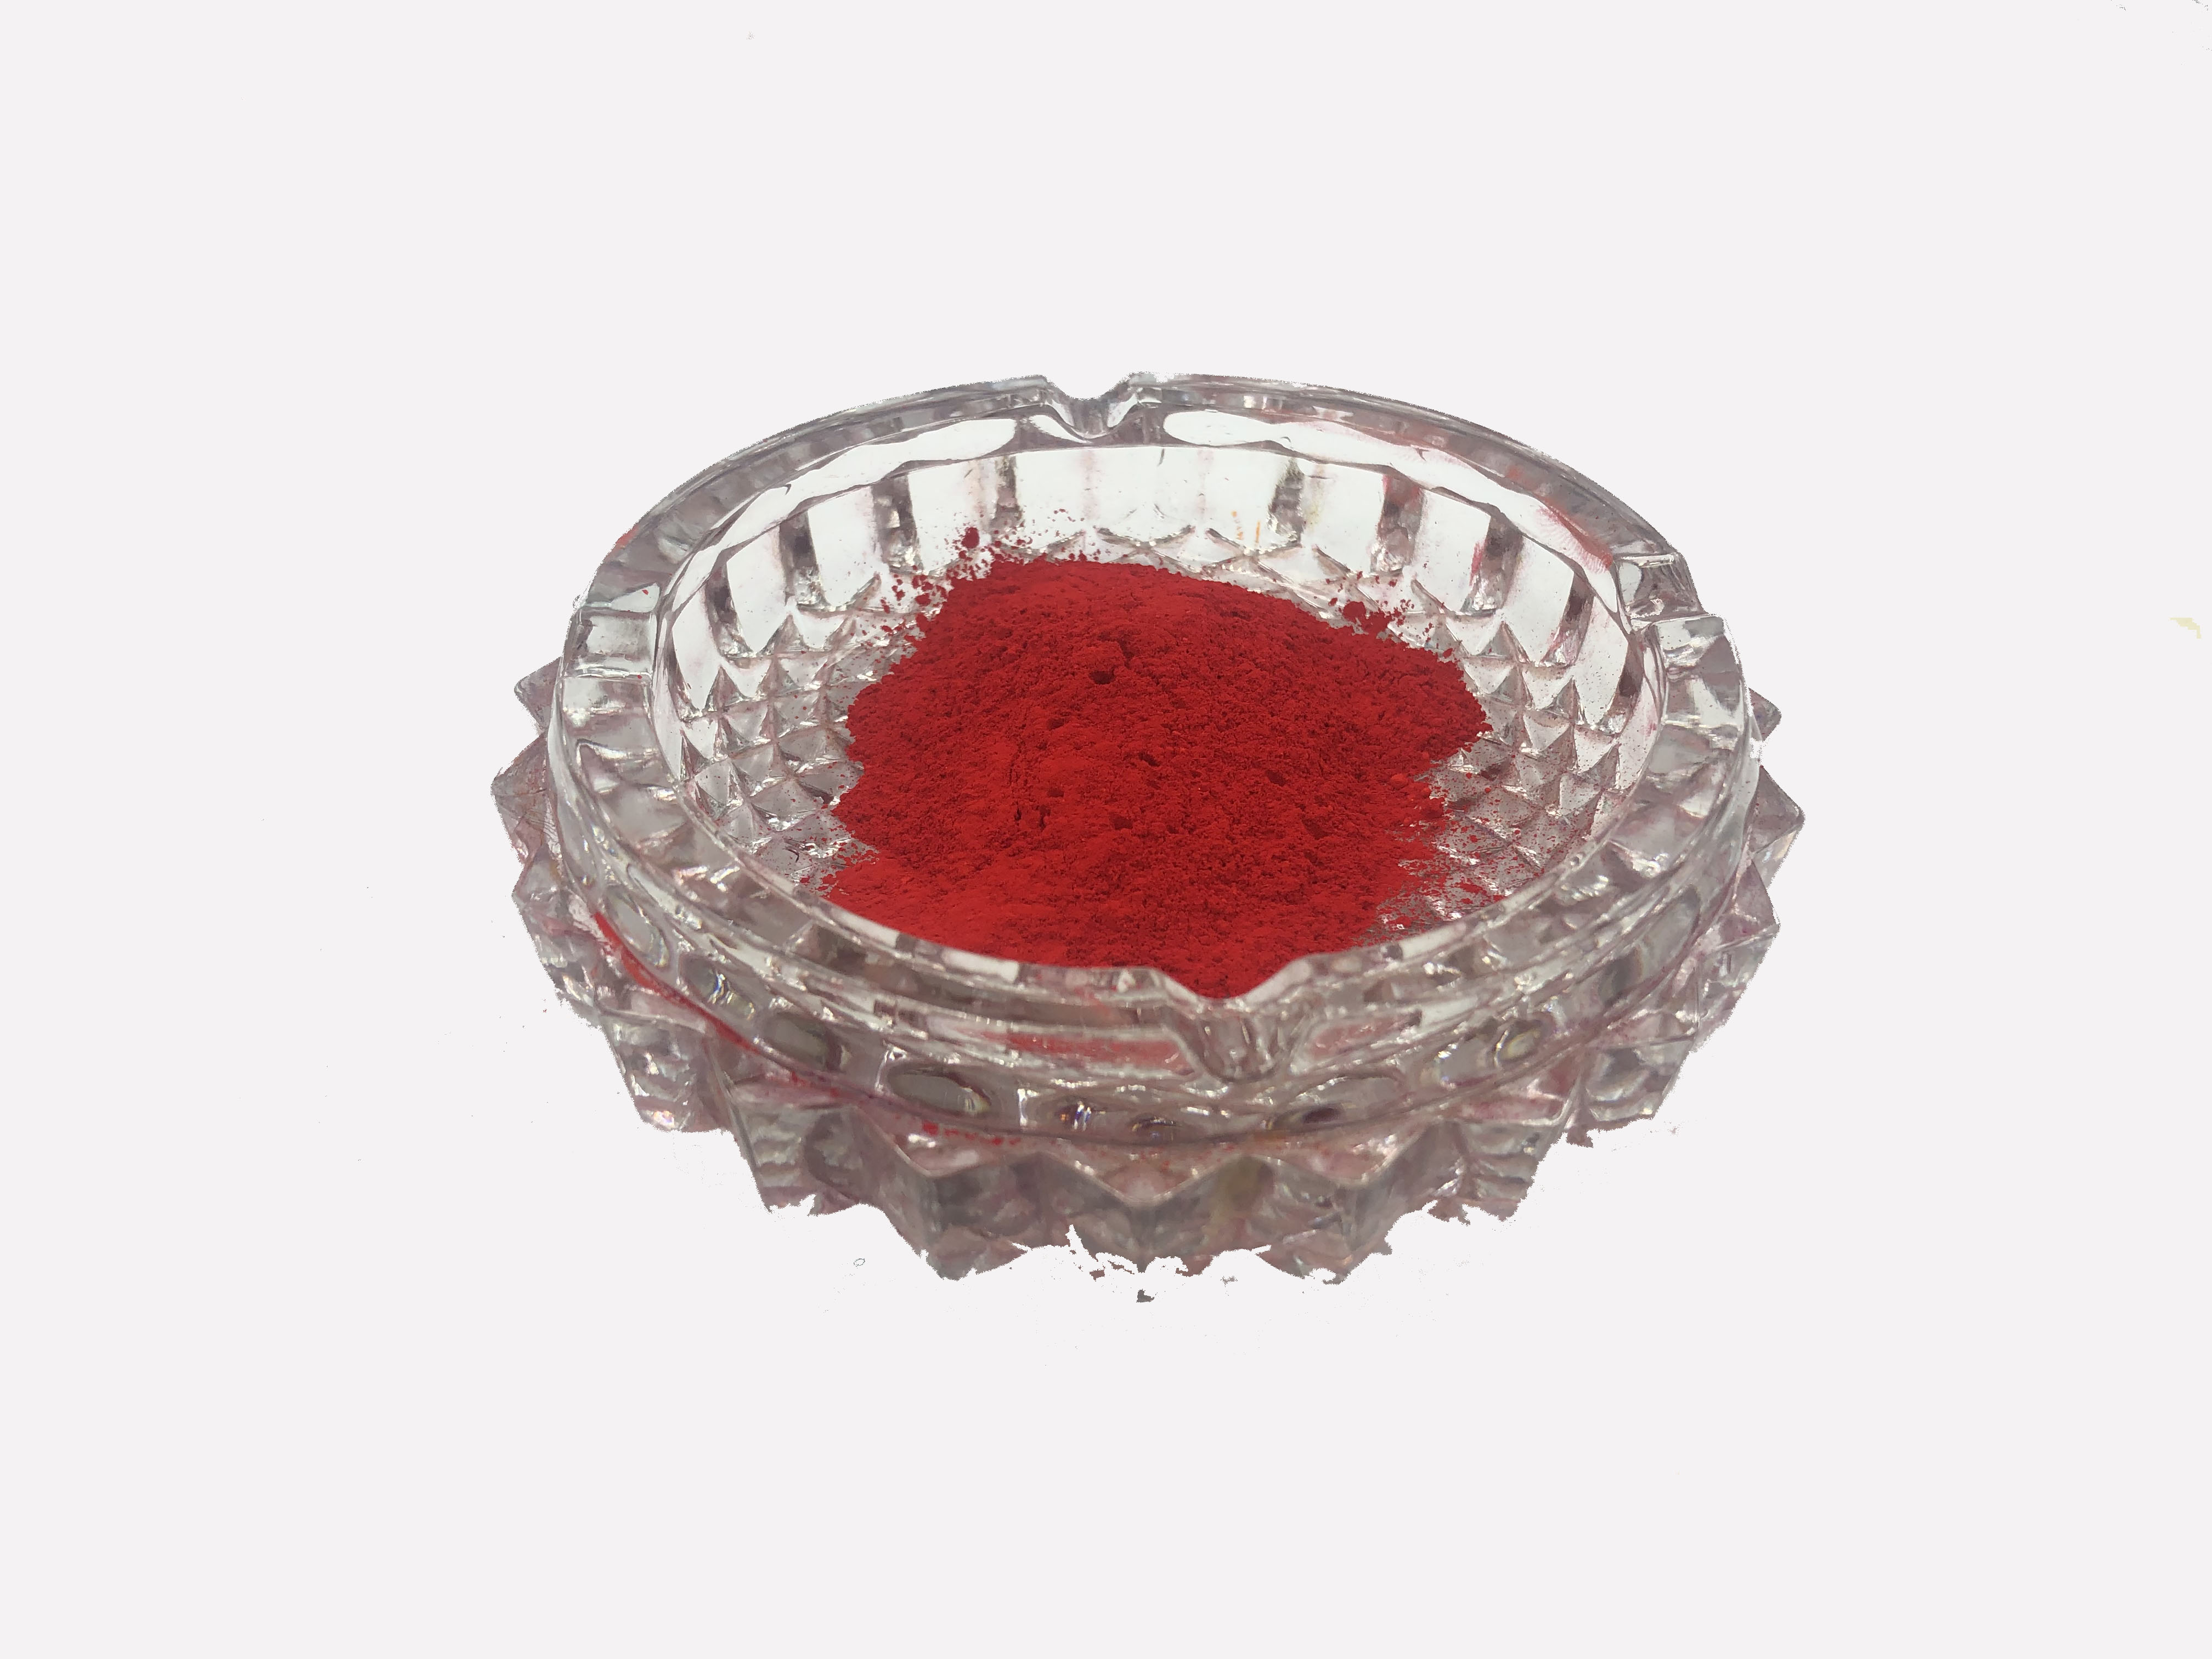 Red 61254 High Alkali Resistance And High Acid Resistance For Industrial Coating